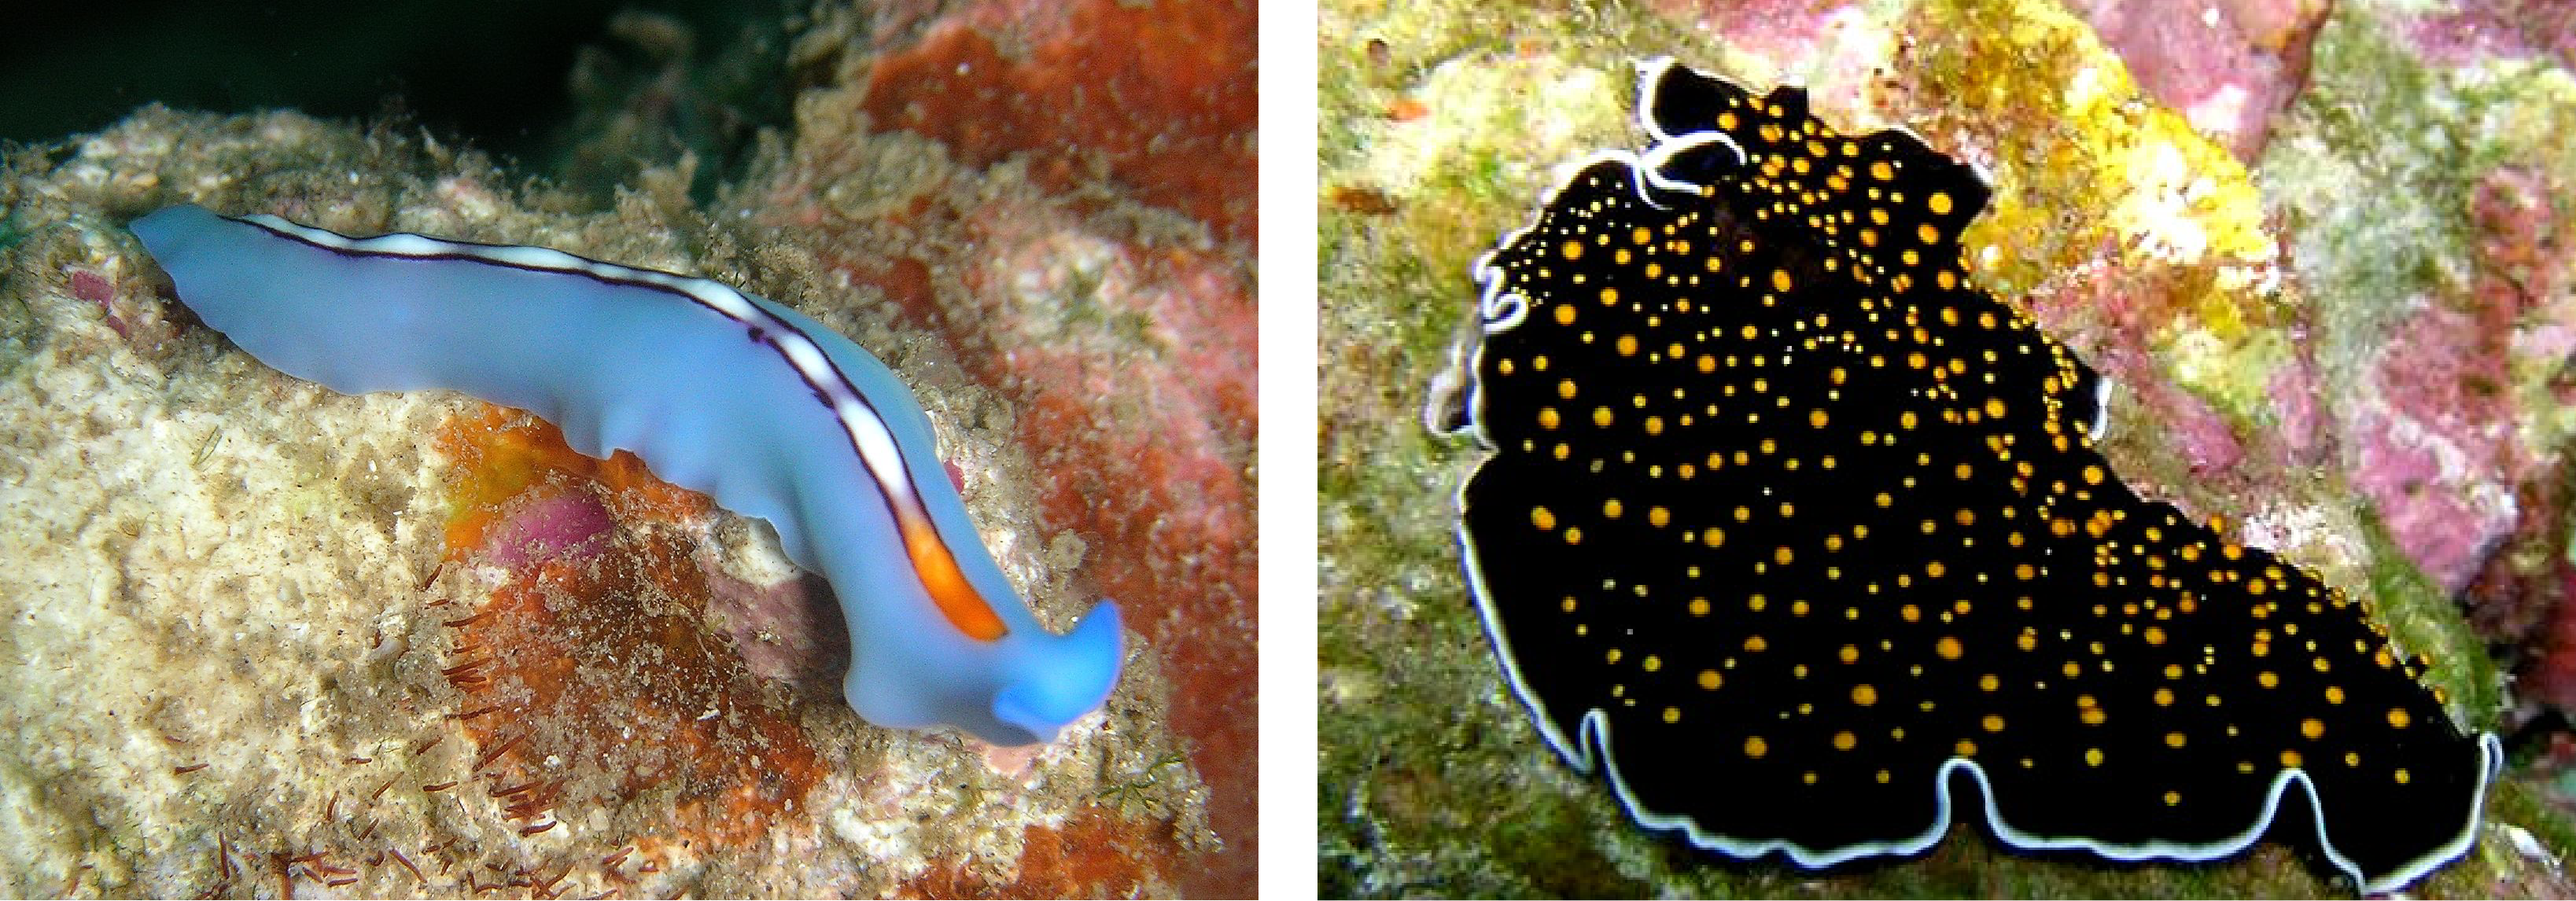 This image shows two flatworms with significant physical diversity.